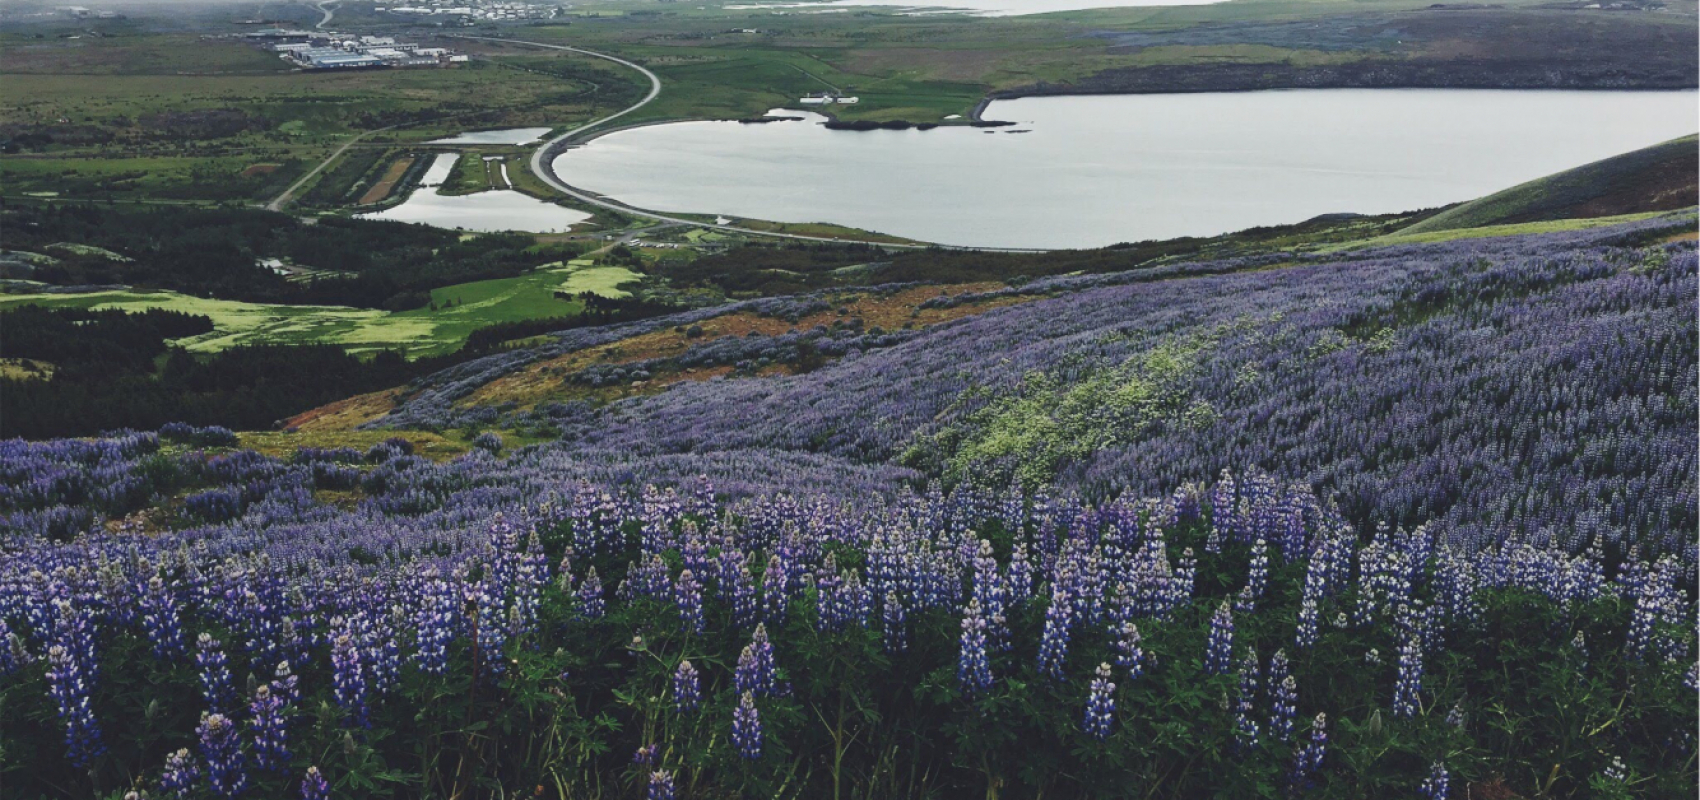 View of Iceland's purple flowers